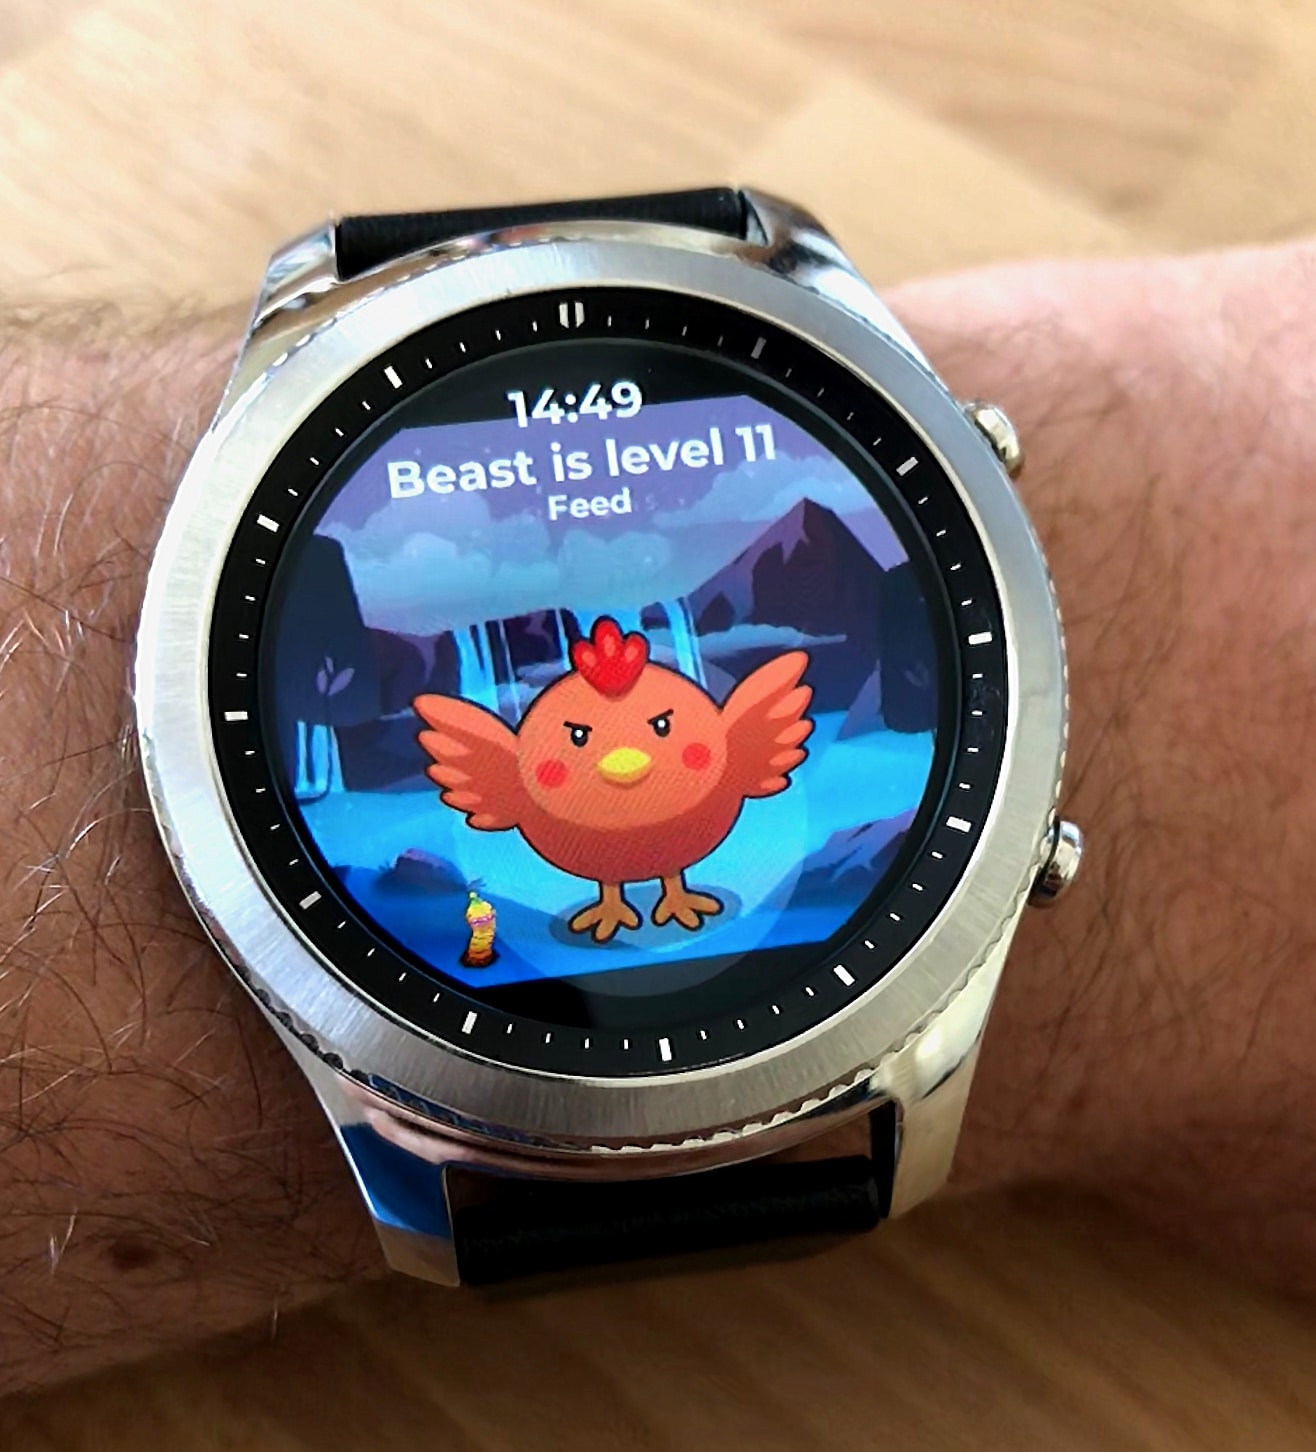 facer-watch-face-game-2